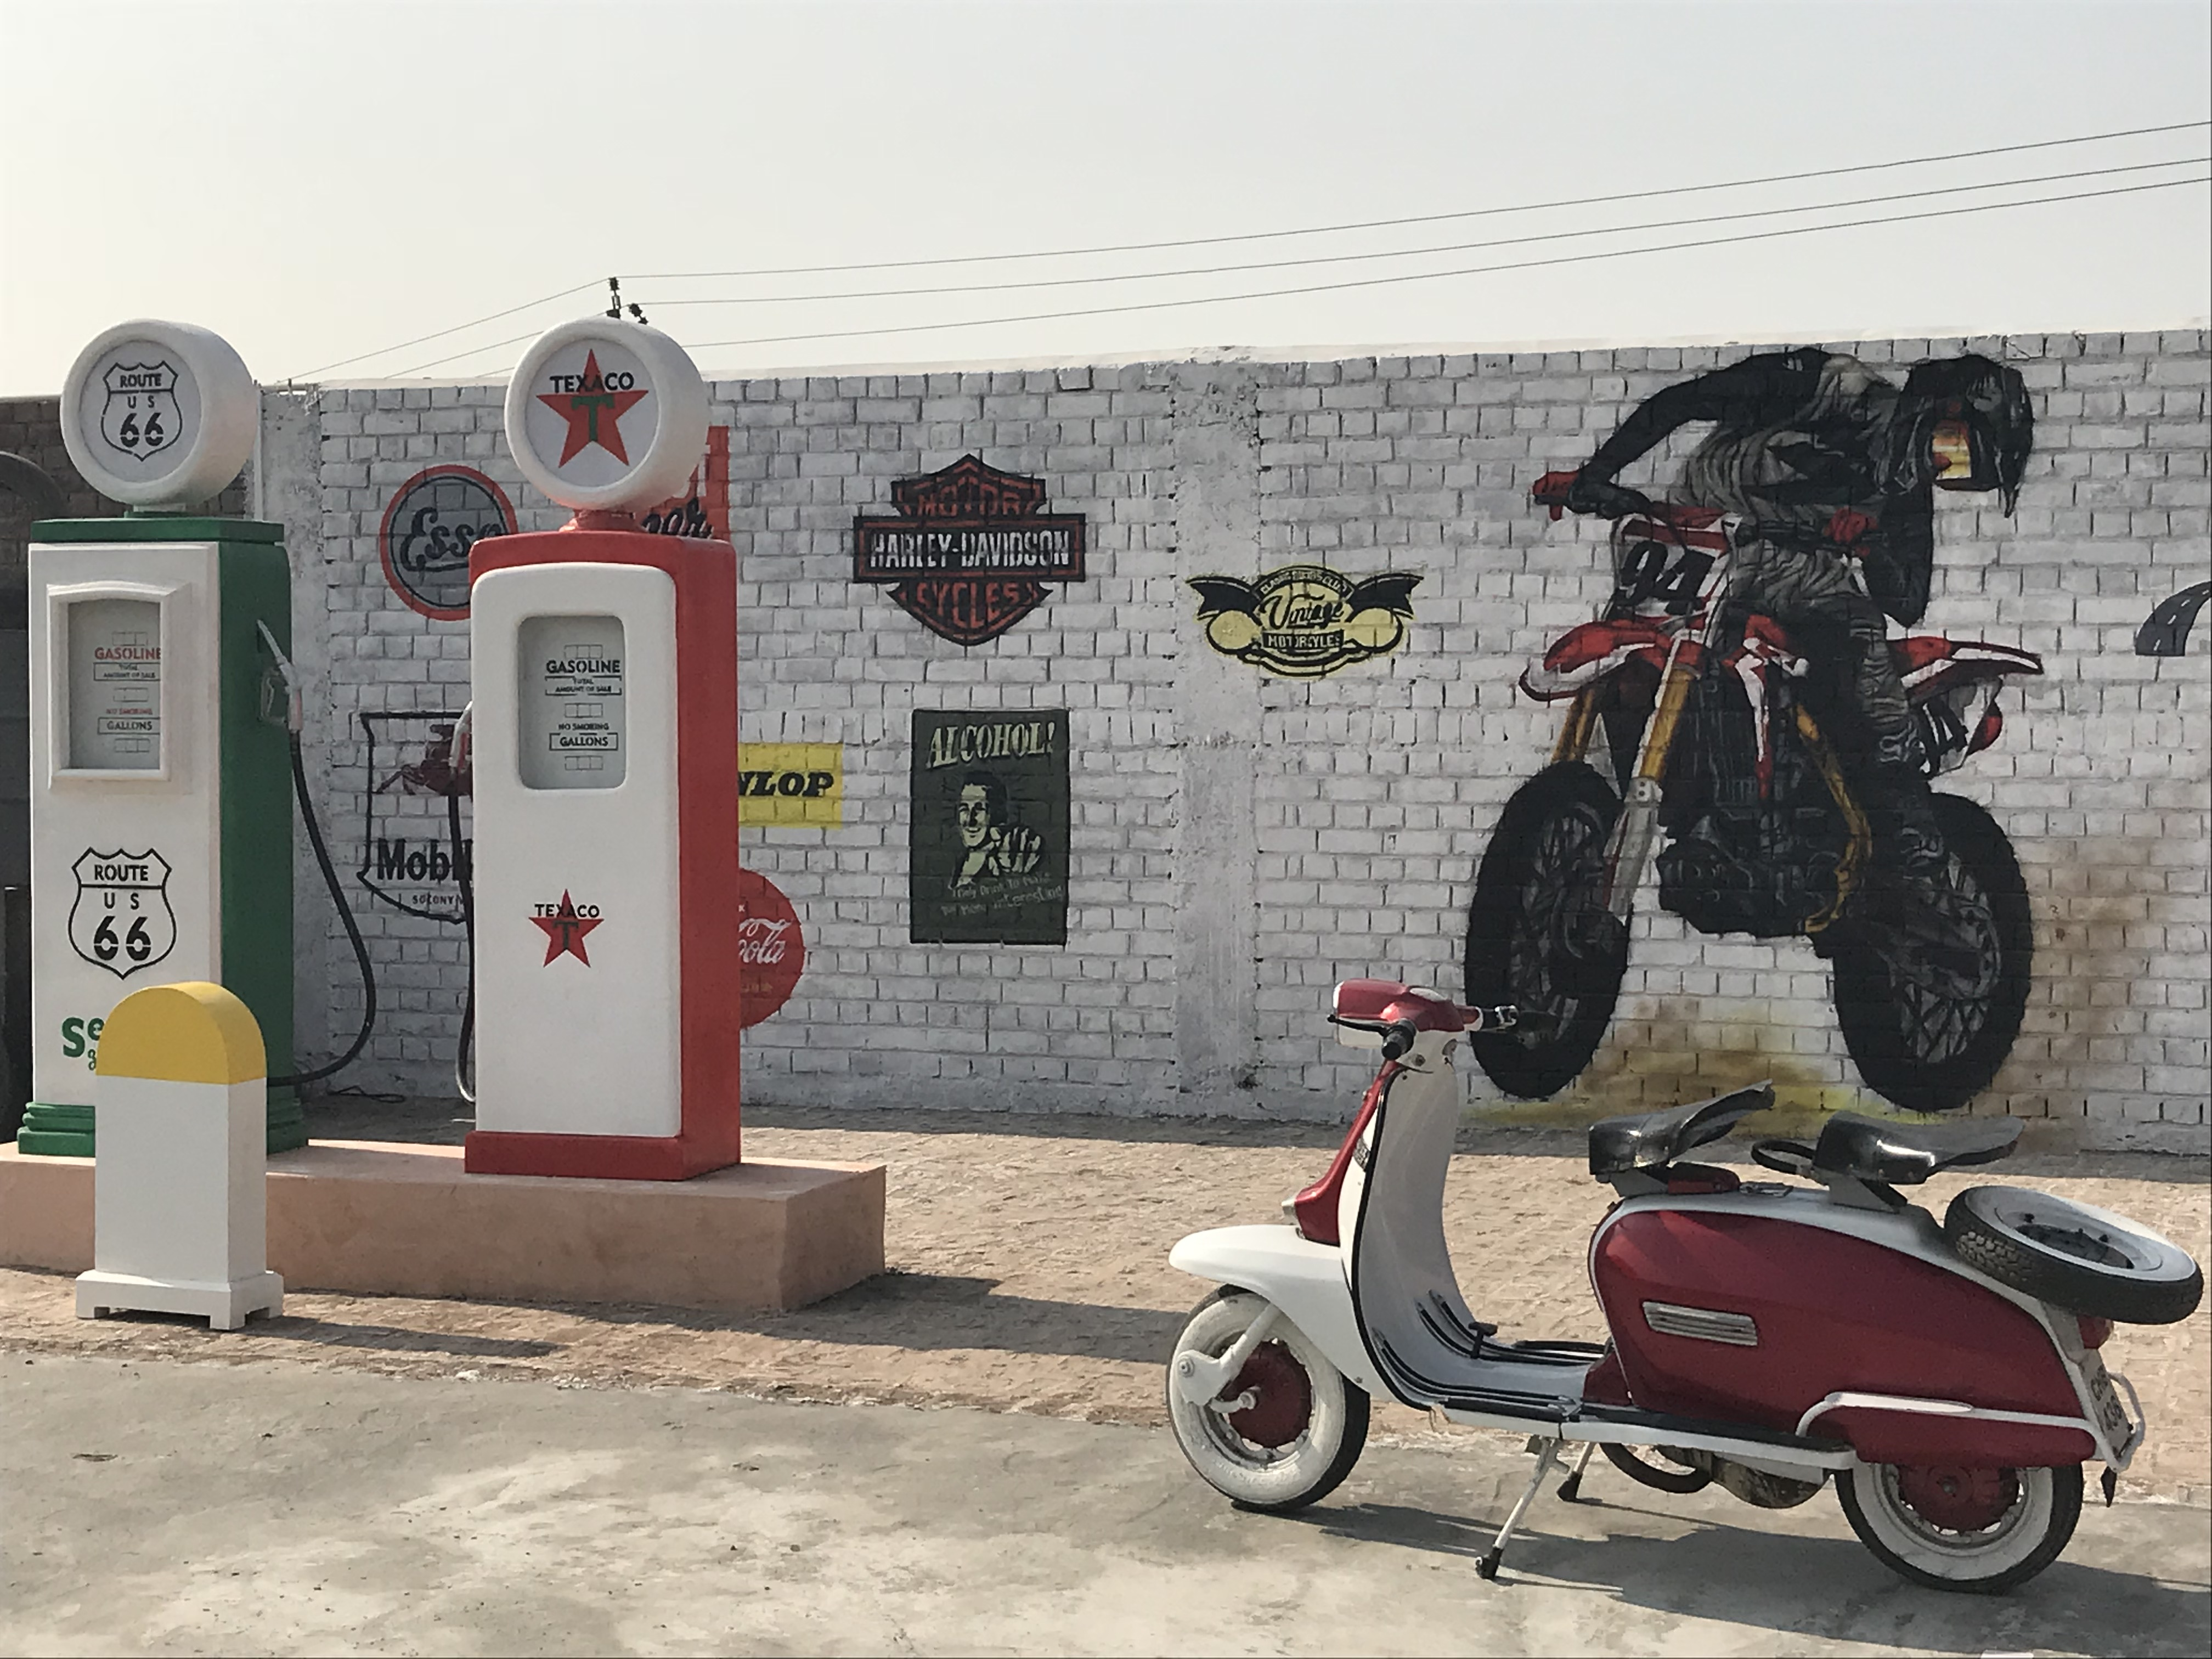 Route 66 us (2)